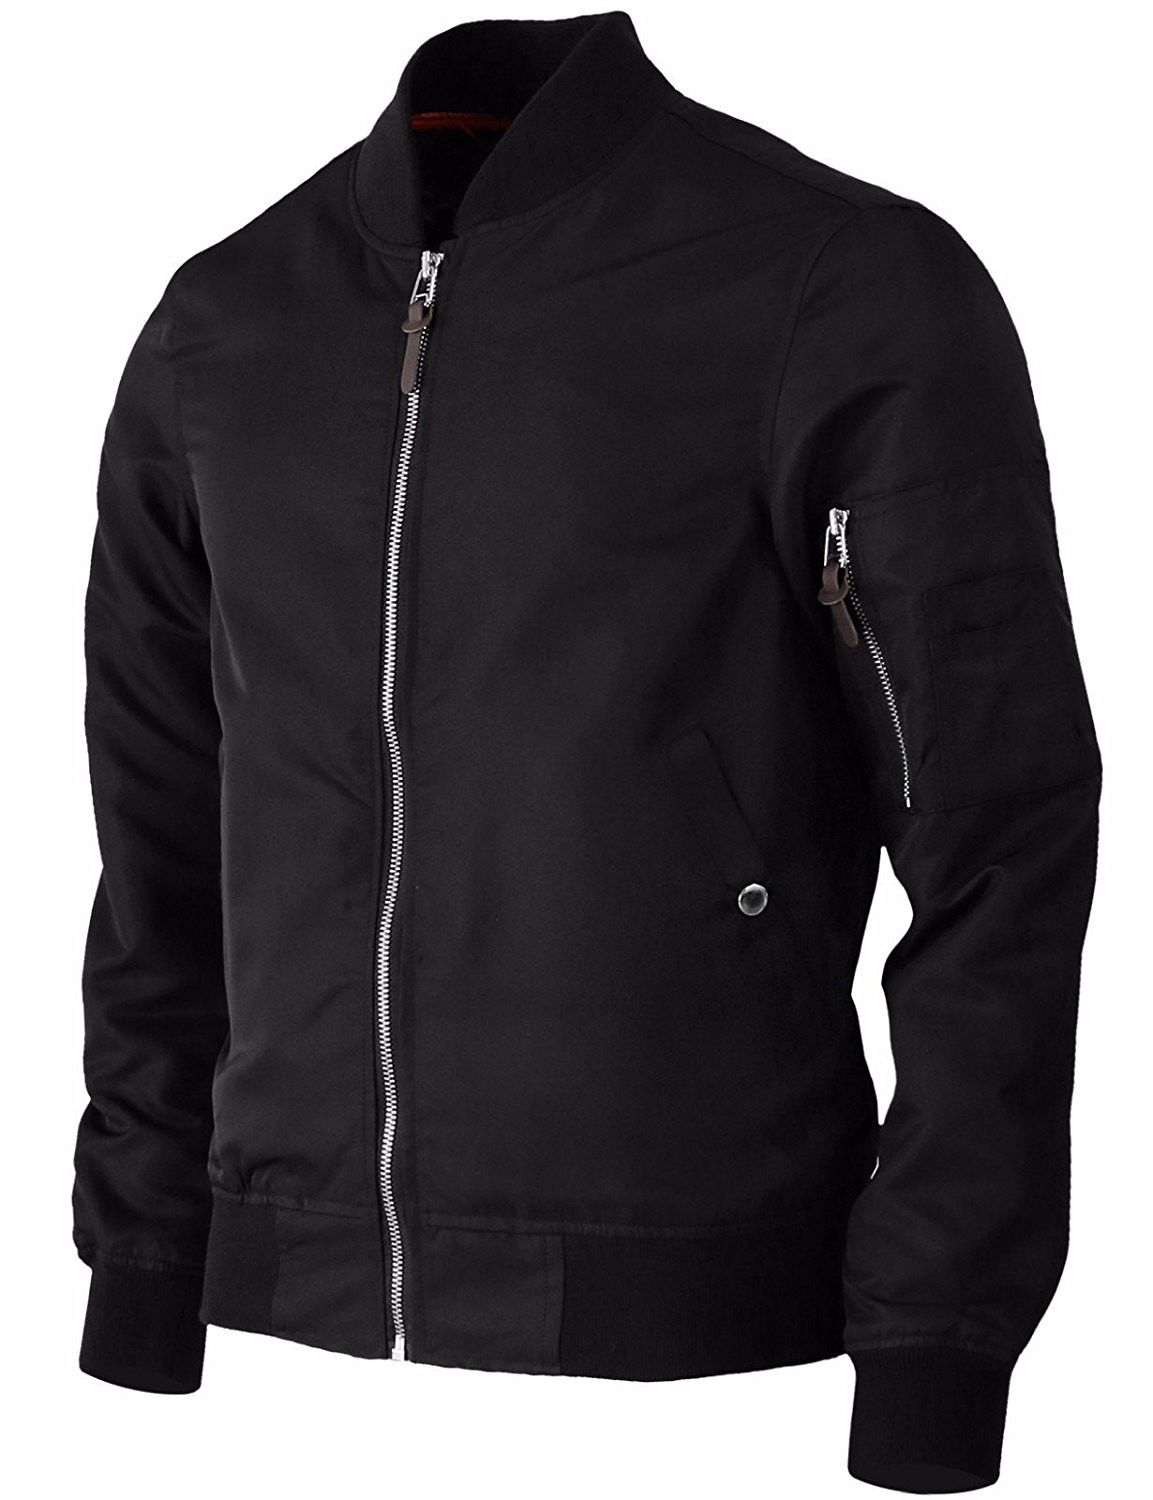 d96d0ff8d Men's Bomber Flight Jacket MA-1 Lightweight Windbreaker Zip Up ...